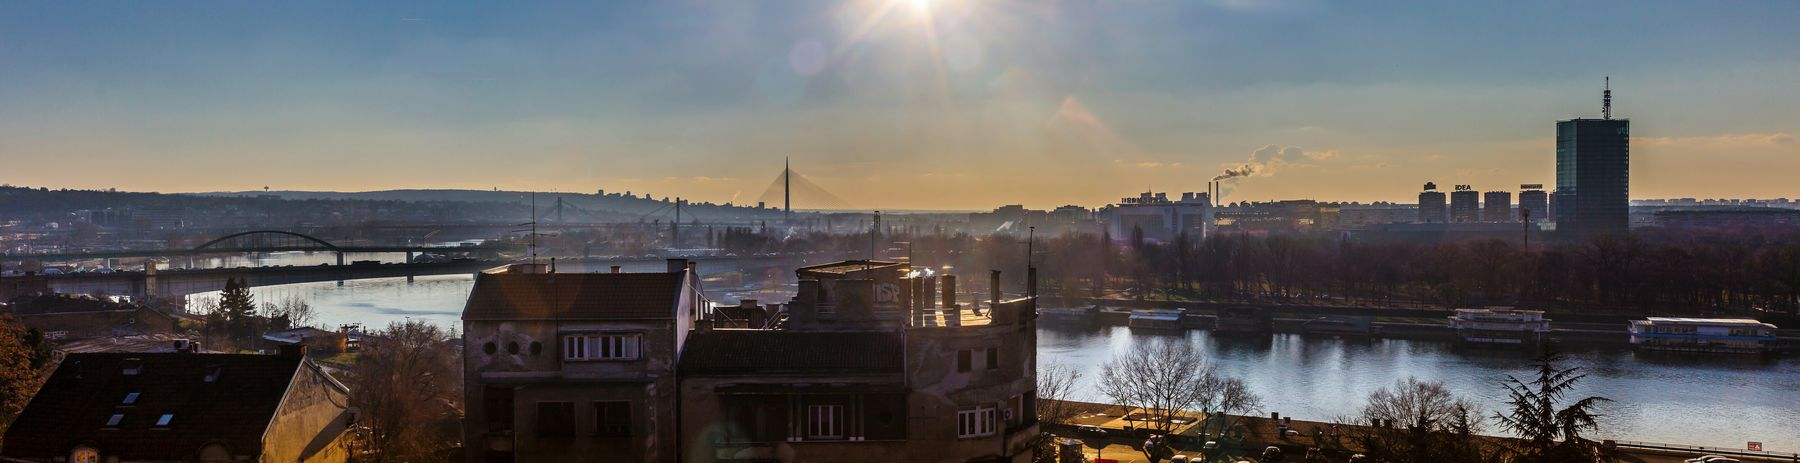 Panorama Panoramic Photography Landscape Cityscapes City City View  Streetphotography Belgrade,Serbia